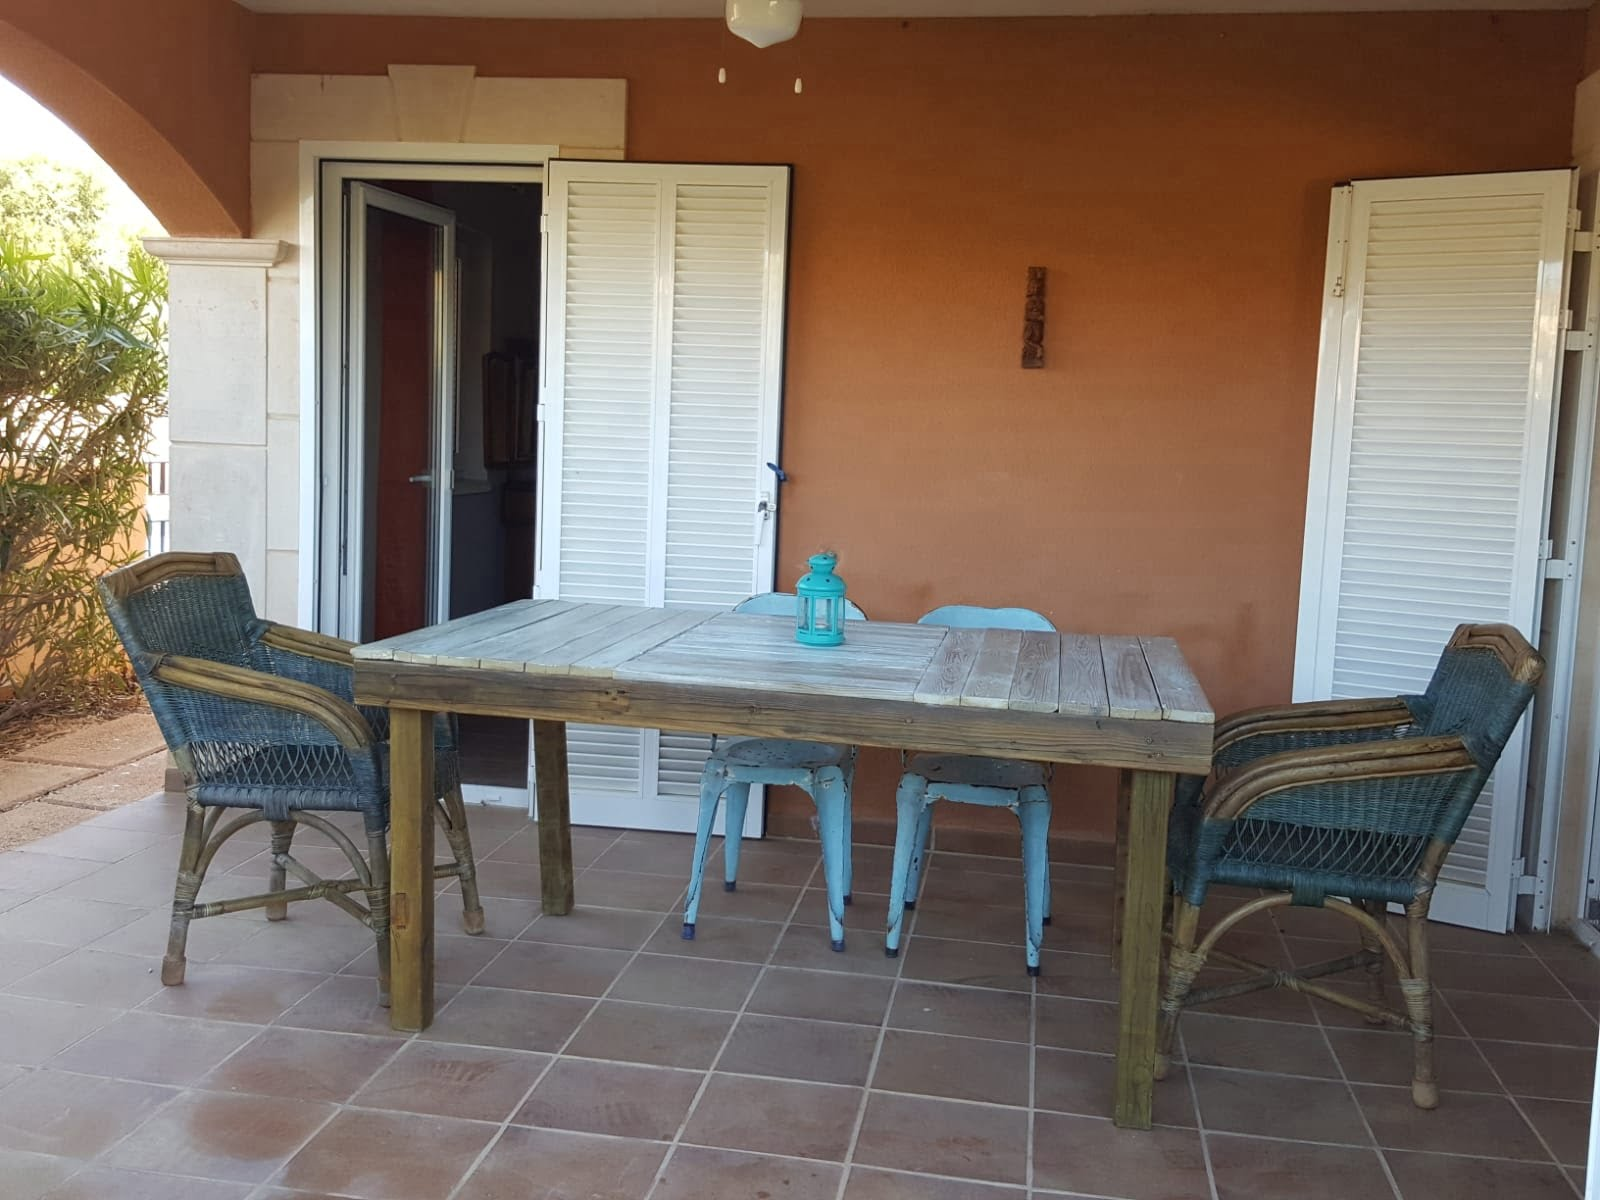 Passatge - Flat with parking in Mallorca